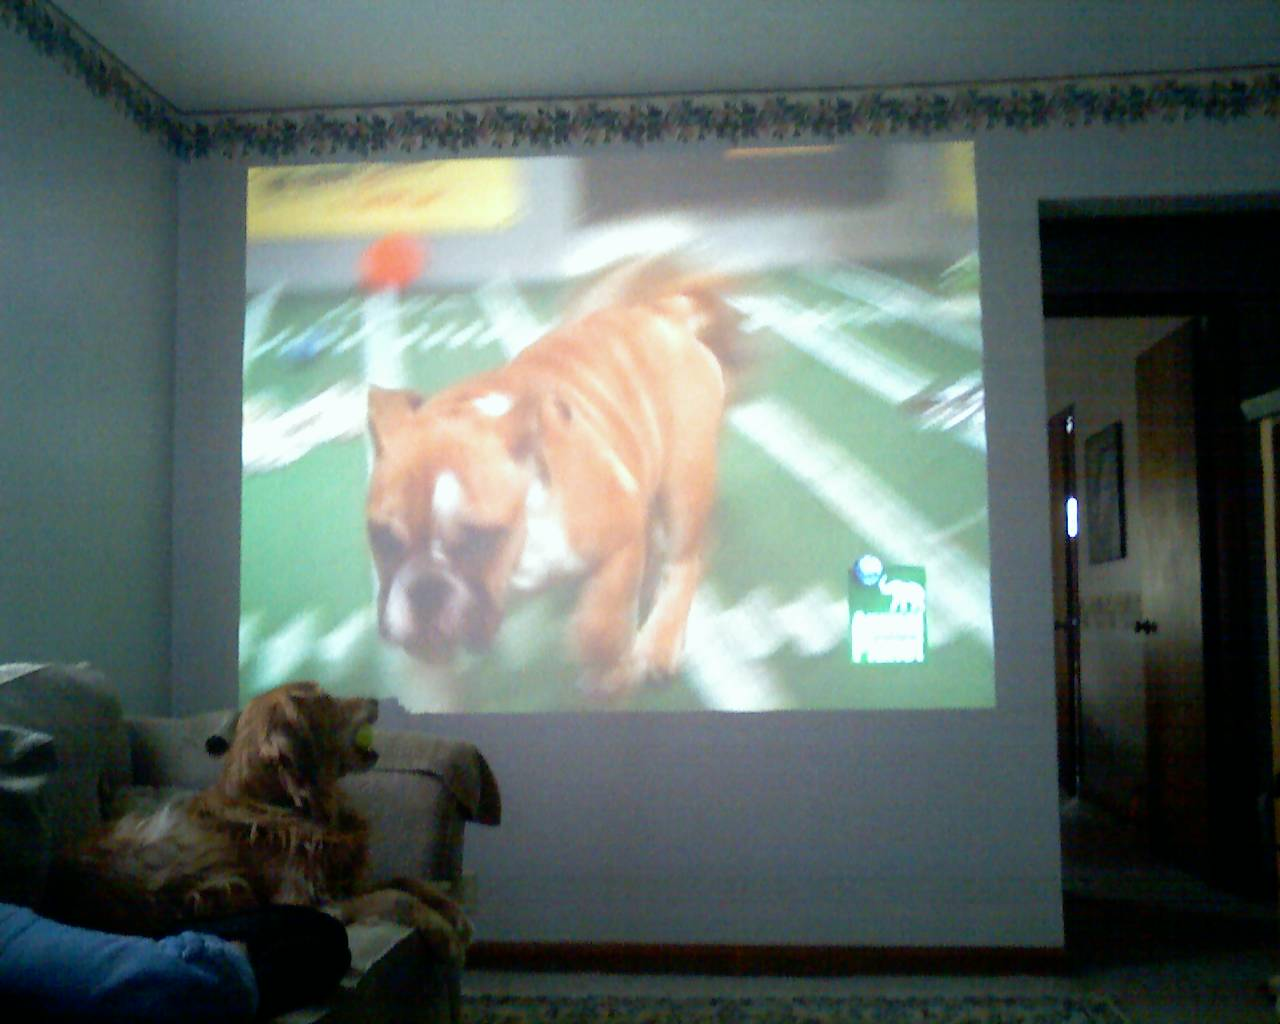 Puppy Bowl III on the big screen